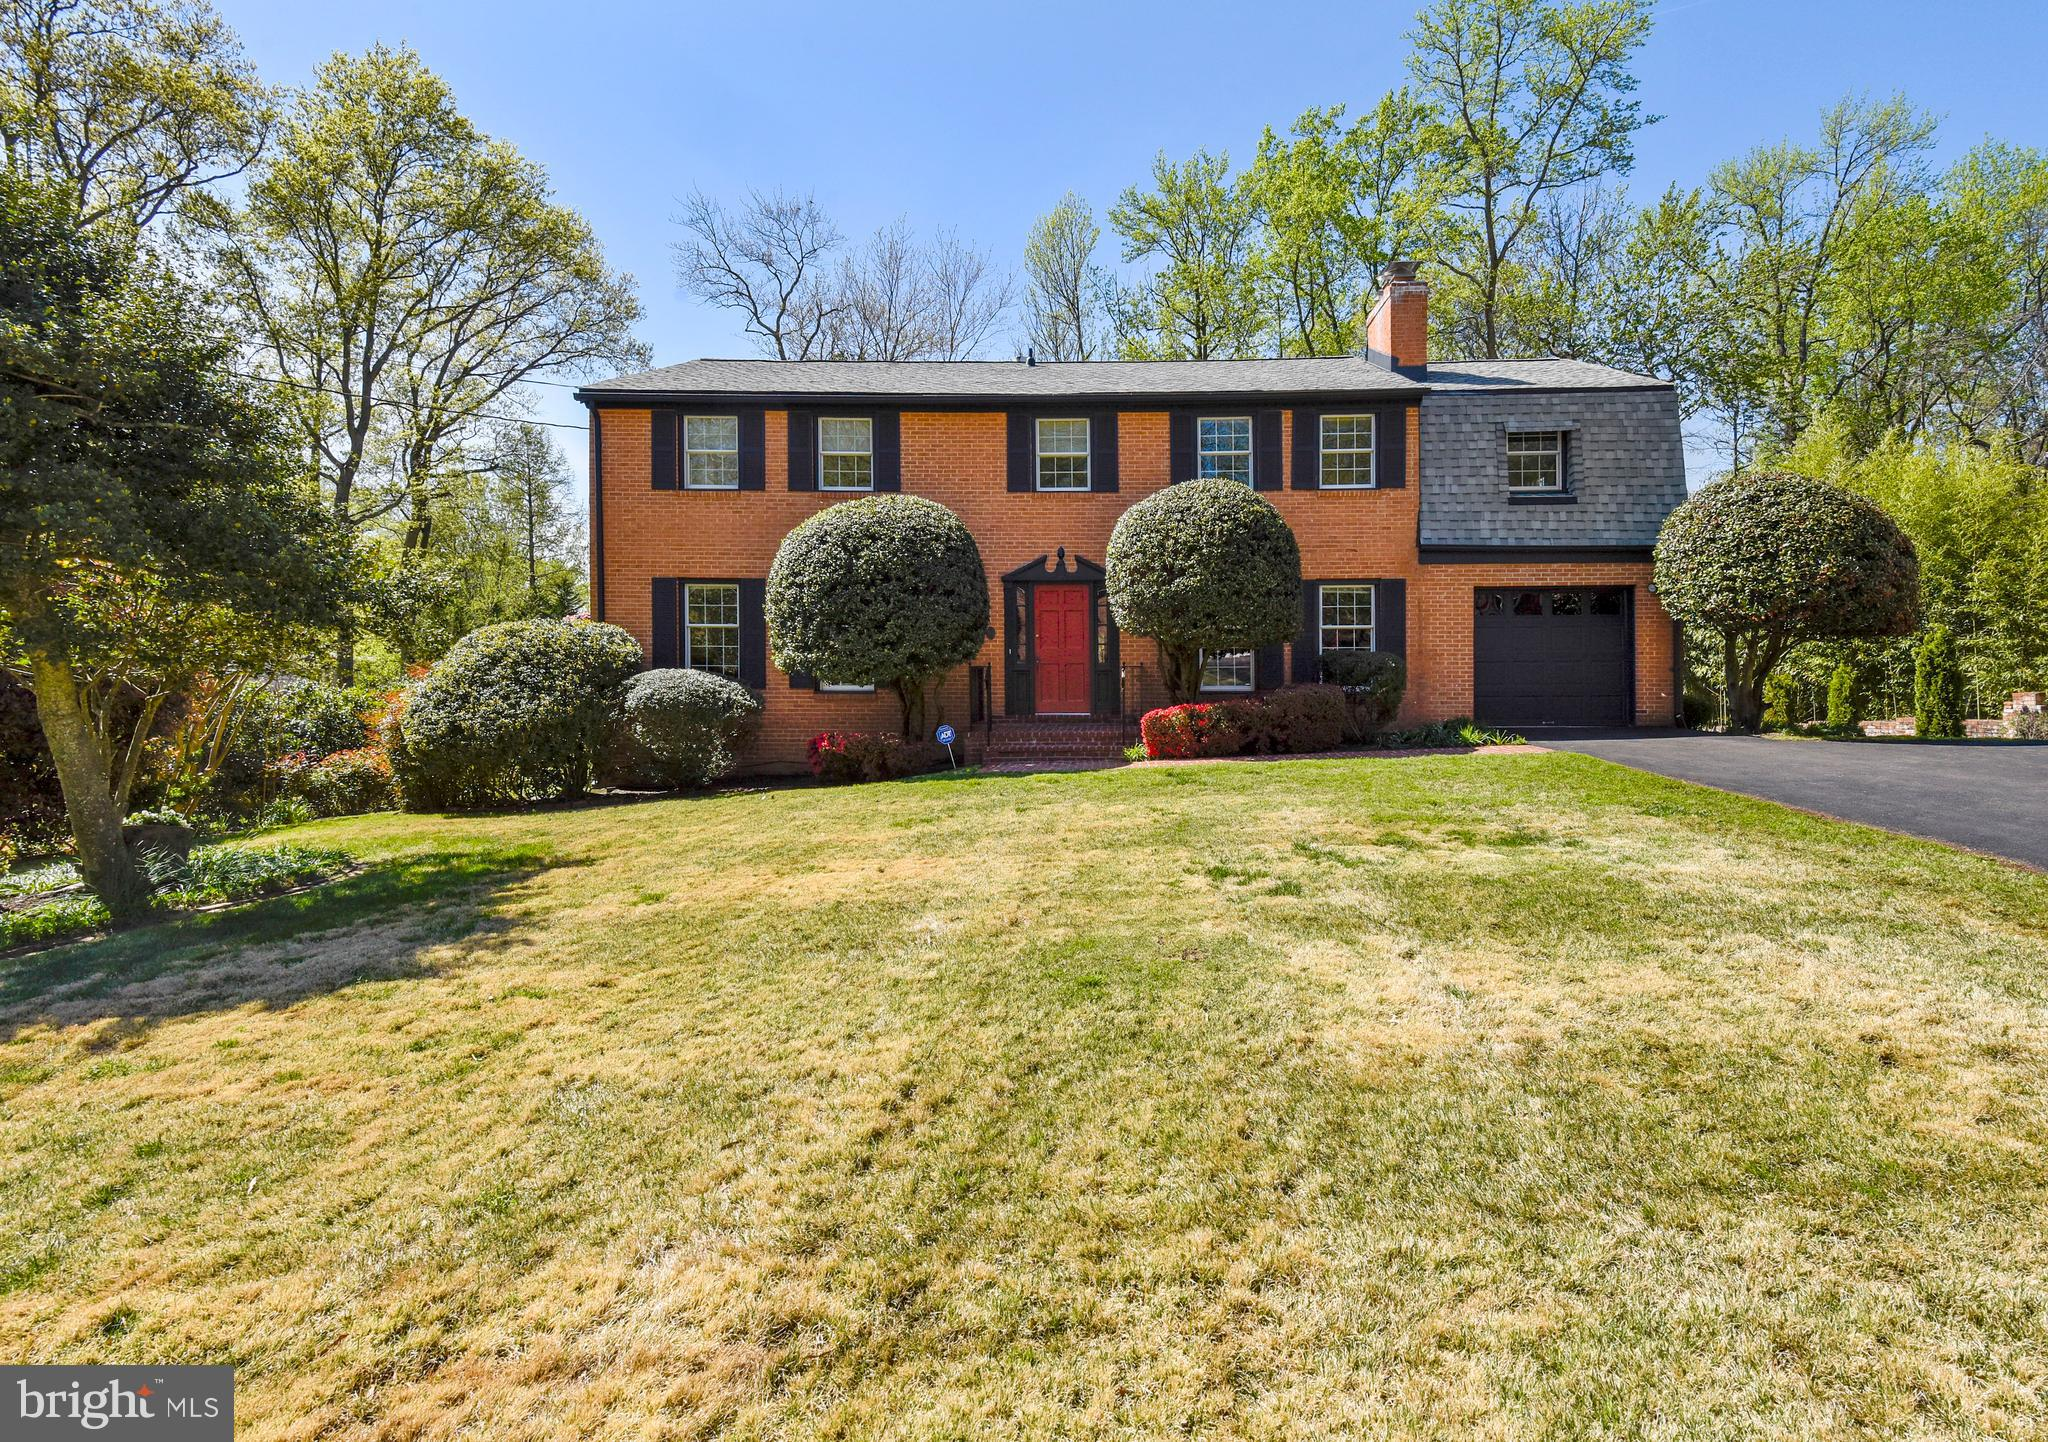 Traditional Federal Colonial elegantly sited on approximately one third, fenced, treed, landscaped acre. All brick with shutters, and new architectural shingle roof with 50 year warranty.  Rear sundeck with stairs to spacious entertaining patio. Hardwood flooring on main and upper levels, double pane Pella windows throughout, three full levels equaling more than 4000 square feet. Spacious Formal Living and Dining Rooms, fabulous bay window to view backyard flowering trees lead to open Kitchen and Family Room with Fireplace.  Watch the change of season in your Solarium/Florida Room off the Kitchen. What great family time can be spent there its large enough for a crowd. Step out to the Sundeck with stairs to the yard and Patio. Roomy upper level with Master Suite which includes sitting room and Bath with additional four bedrooms and main bath. Lower level Recreation Room has Wet Bar, Bedroom and Bath with two huge storage rooms. Great place to party as it walks out to oversized patio. Under 1 mile to Fort Belvoir, Pentagon, Fort Meade with in 15-20 miles. Safeway and other shopping. 30 minutes to metro. So much more, it is a must see property!